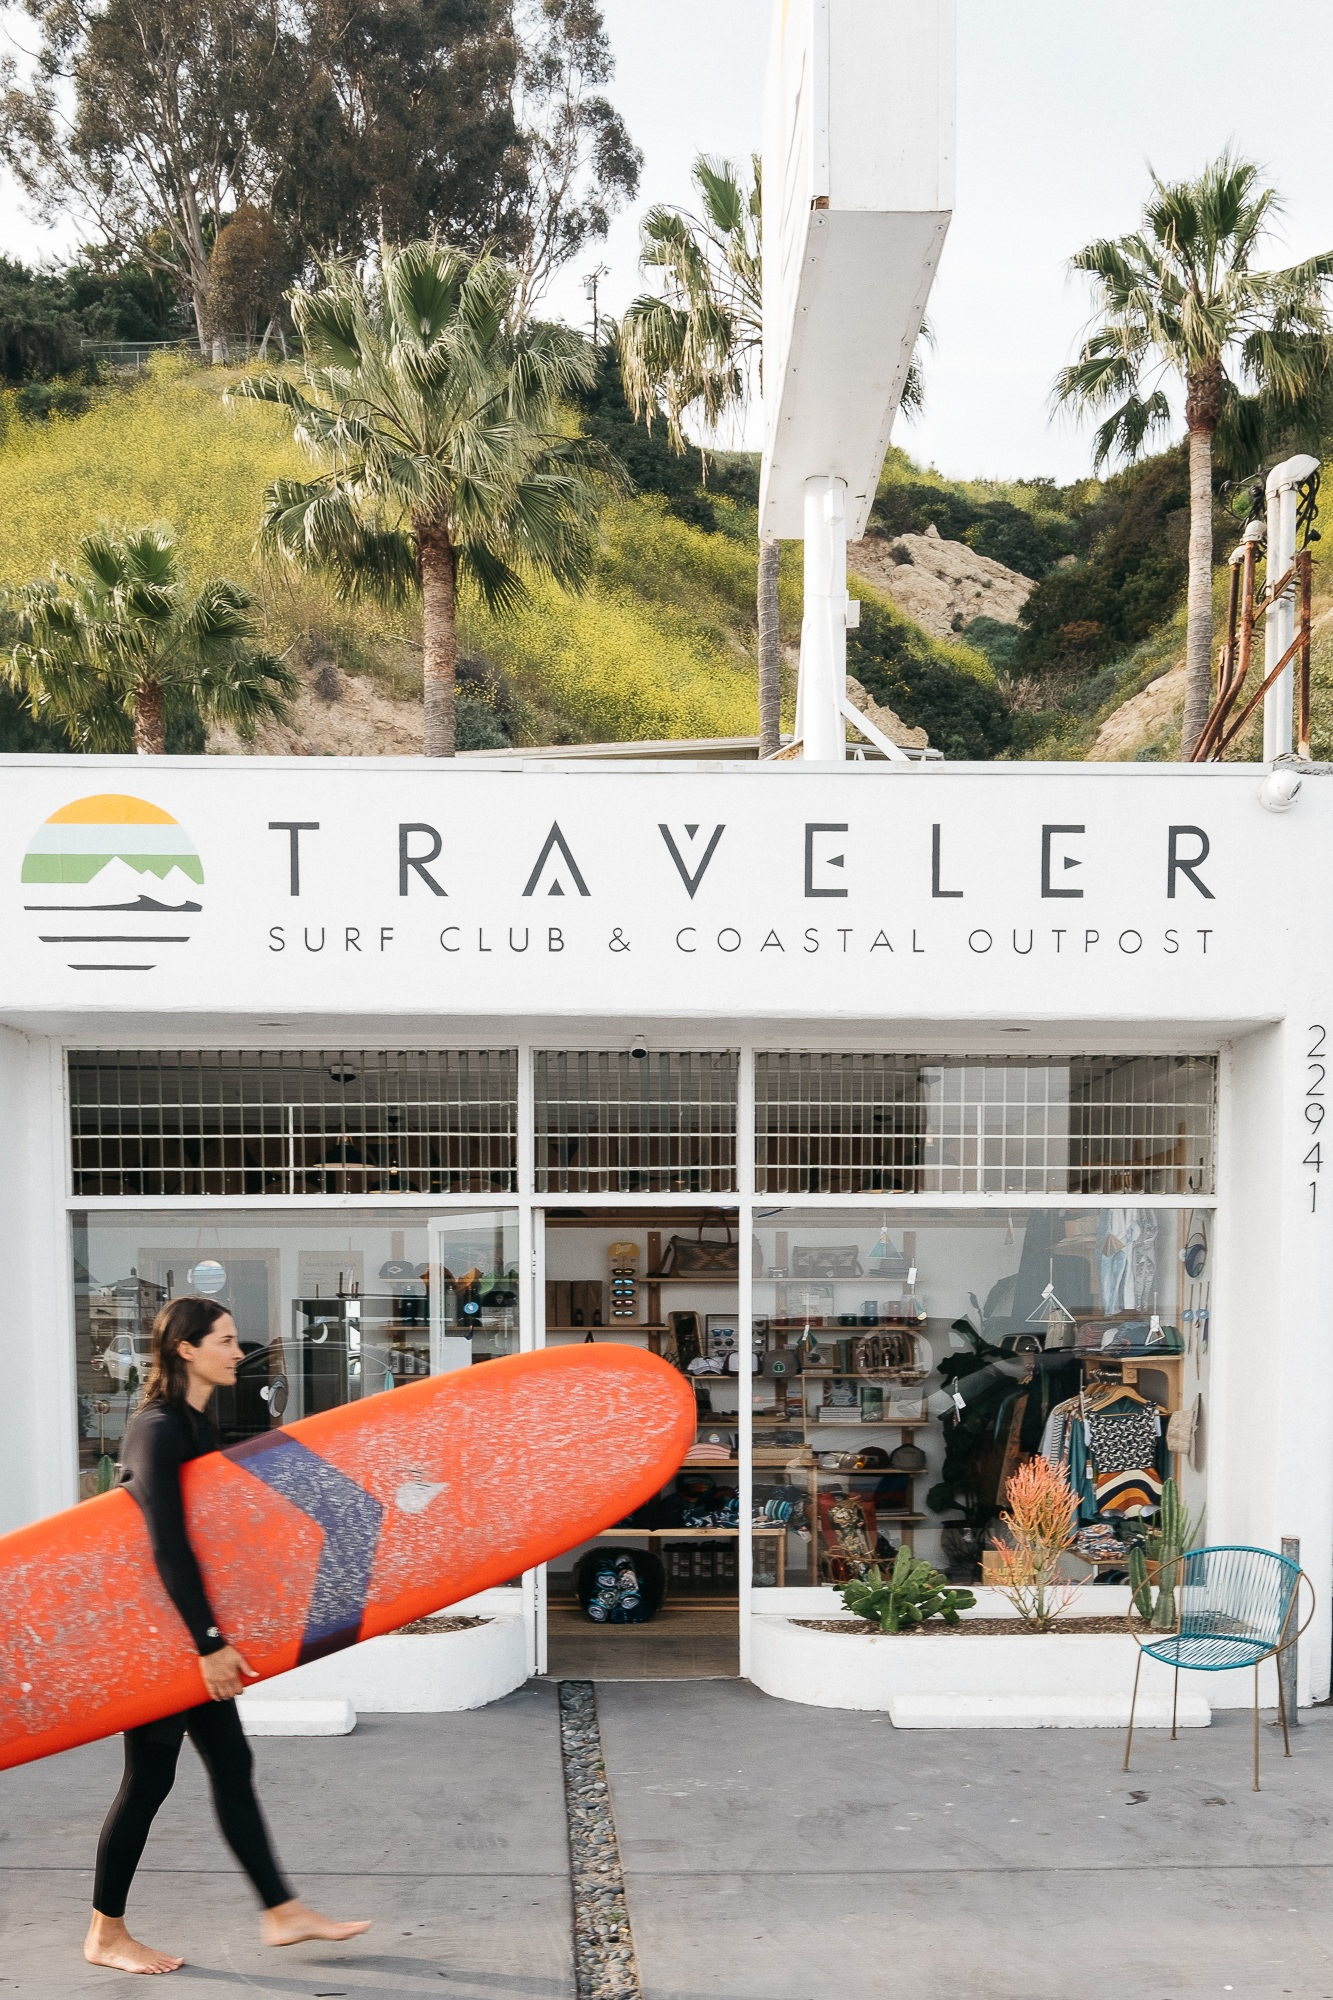 Storage, security, warm people, hot coffee, hotter showers.    Traveler Surf Club Malibu puts the hot in hospitality. Photo: Ian Zamora.